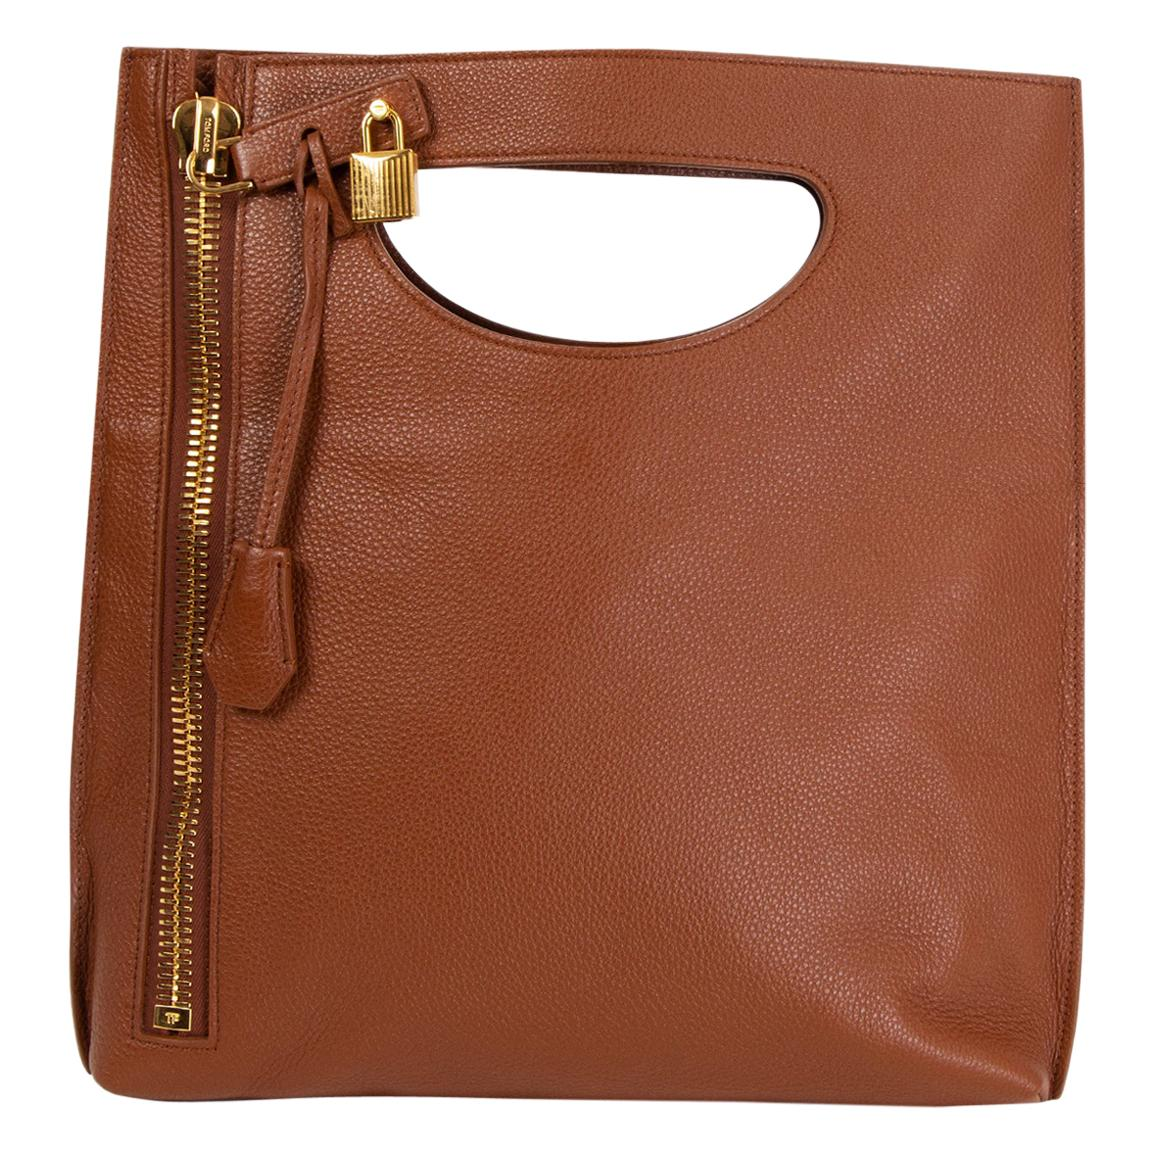 TOM FORD cognac brown leather ALIX SMALL Shoulder Bag